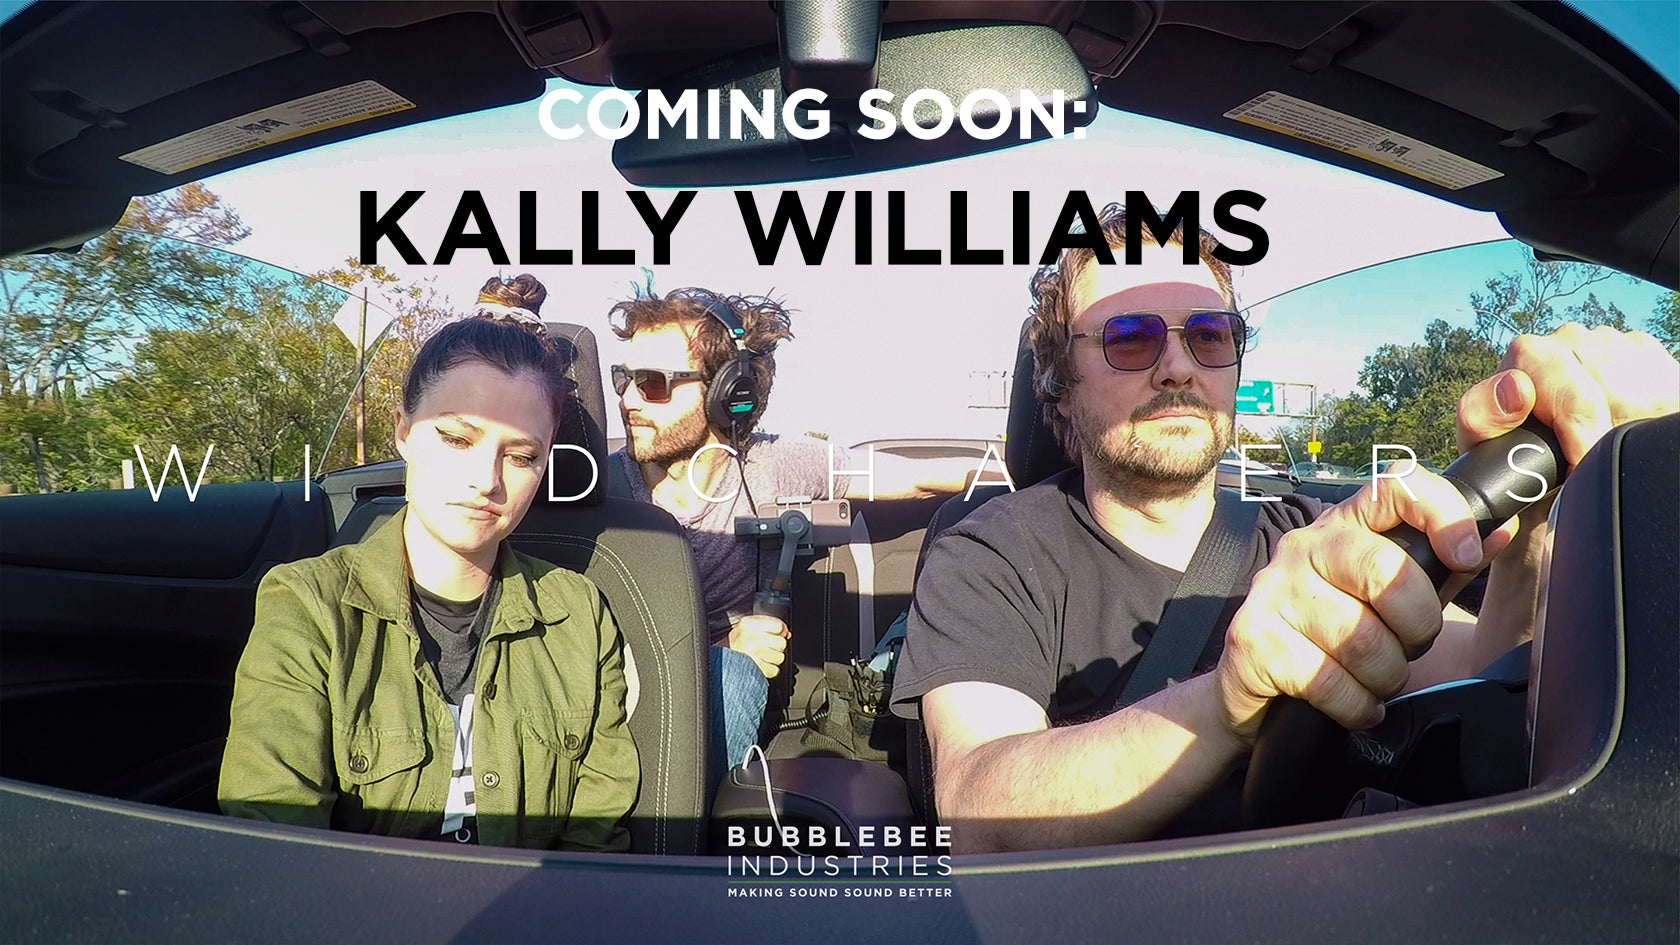 Coming soon - Kally Williams